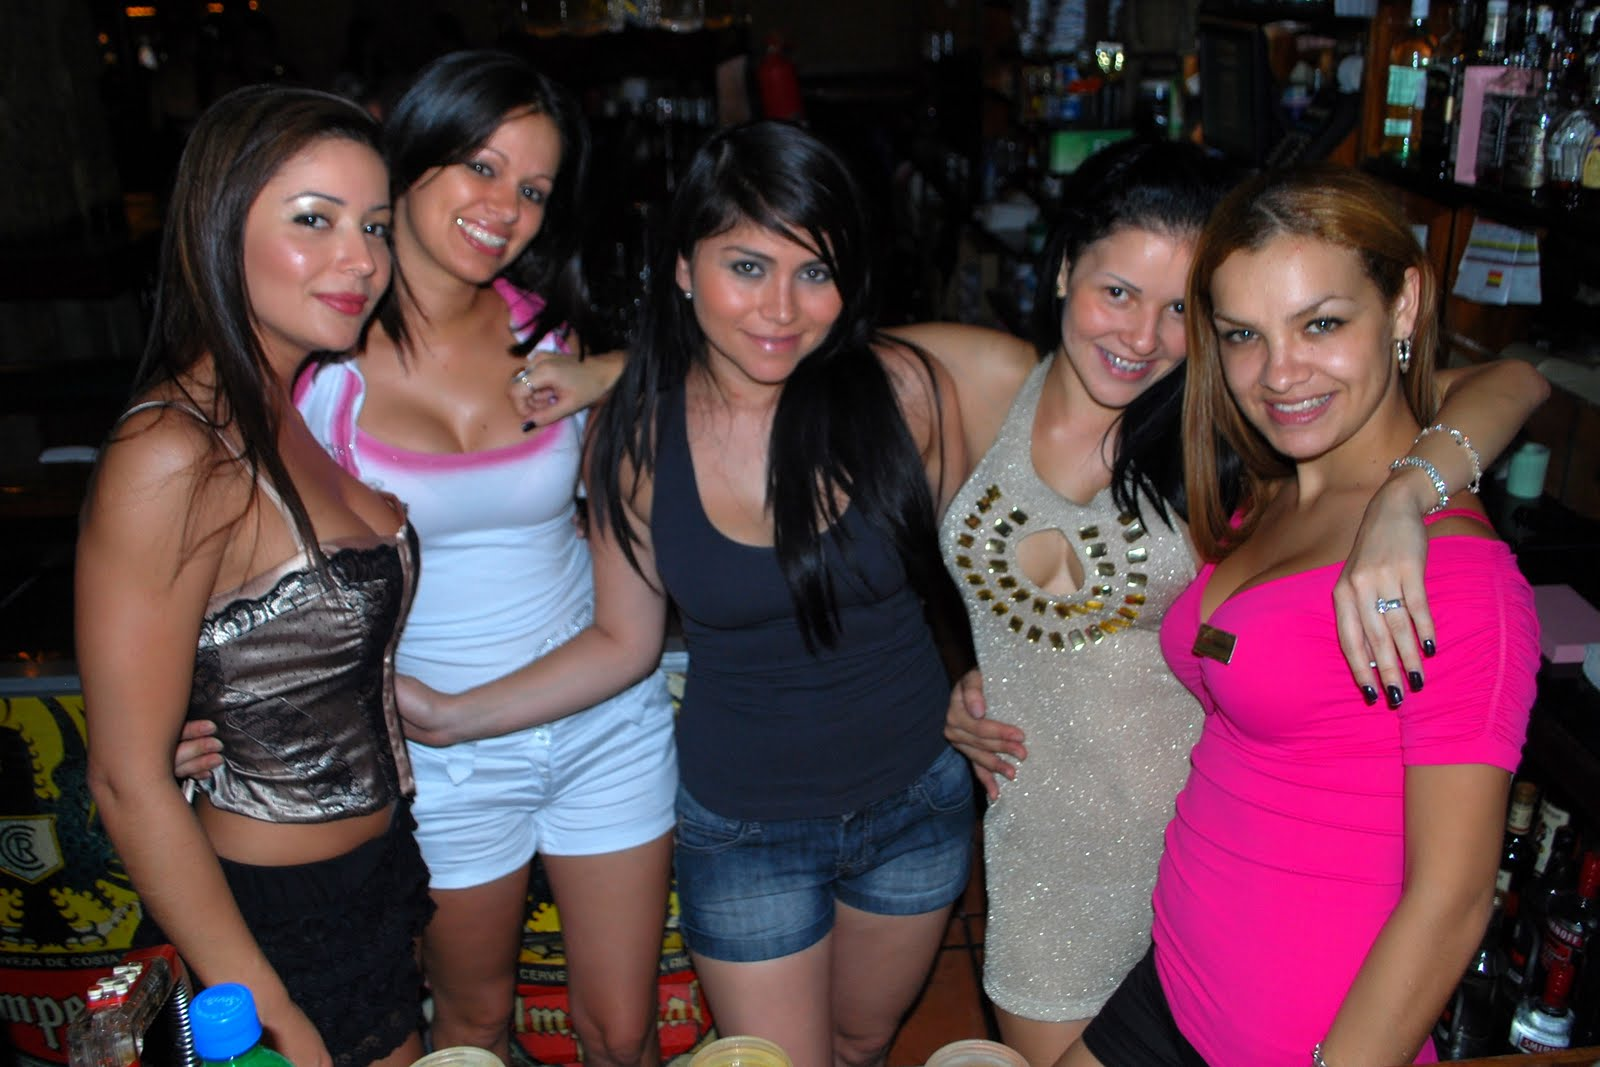 Sex clubs in san juan